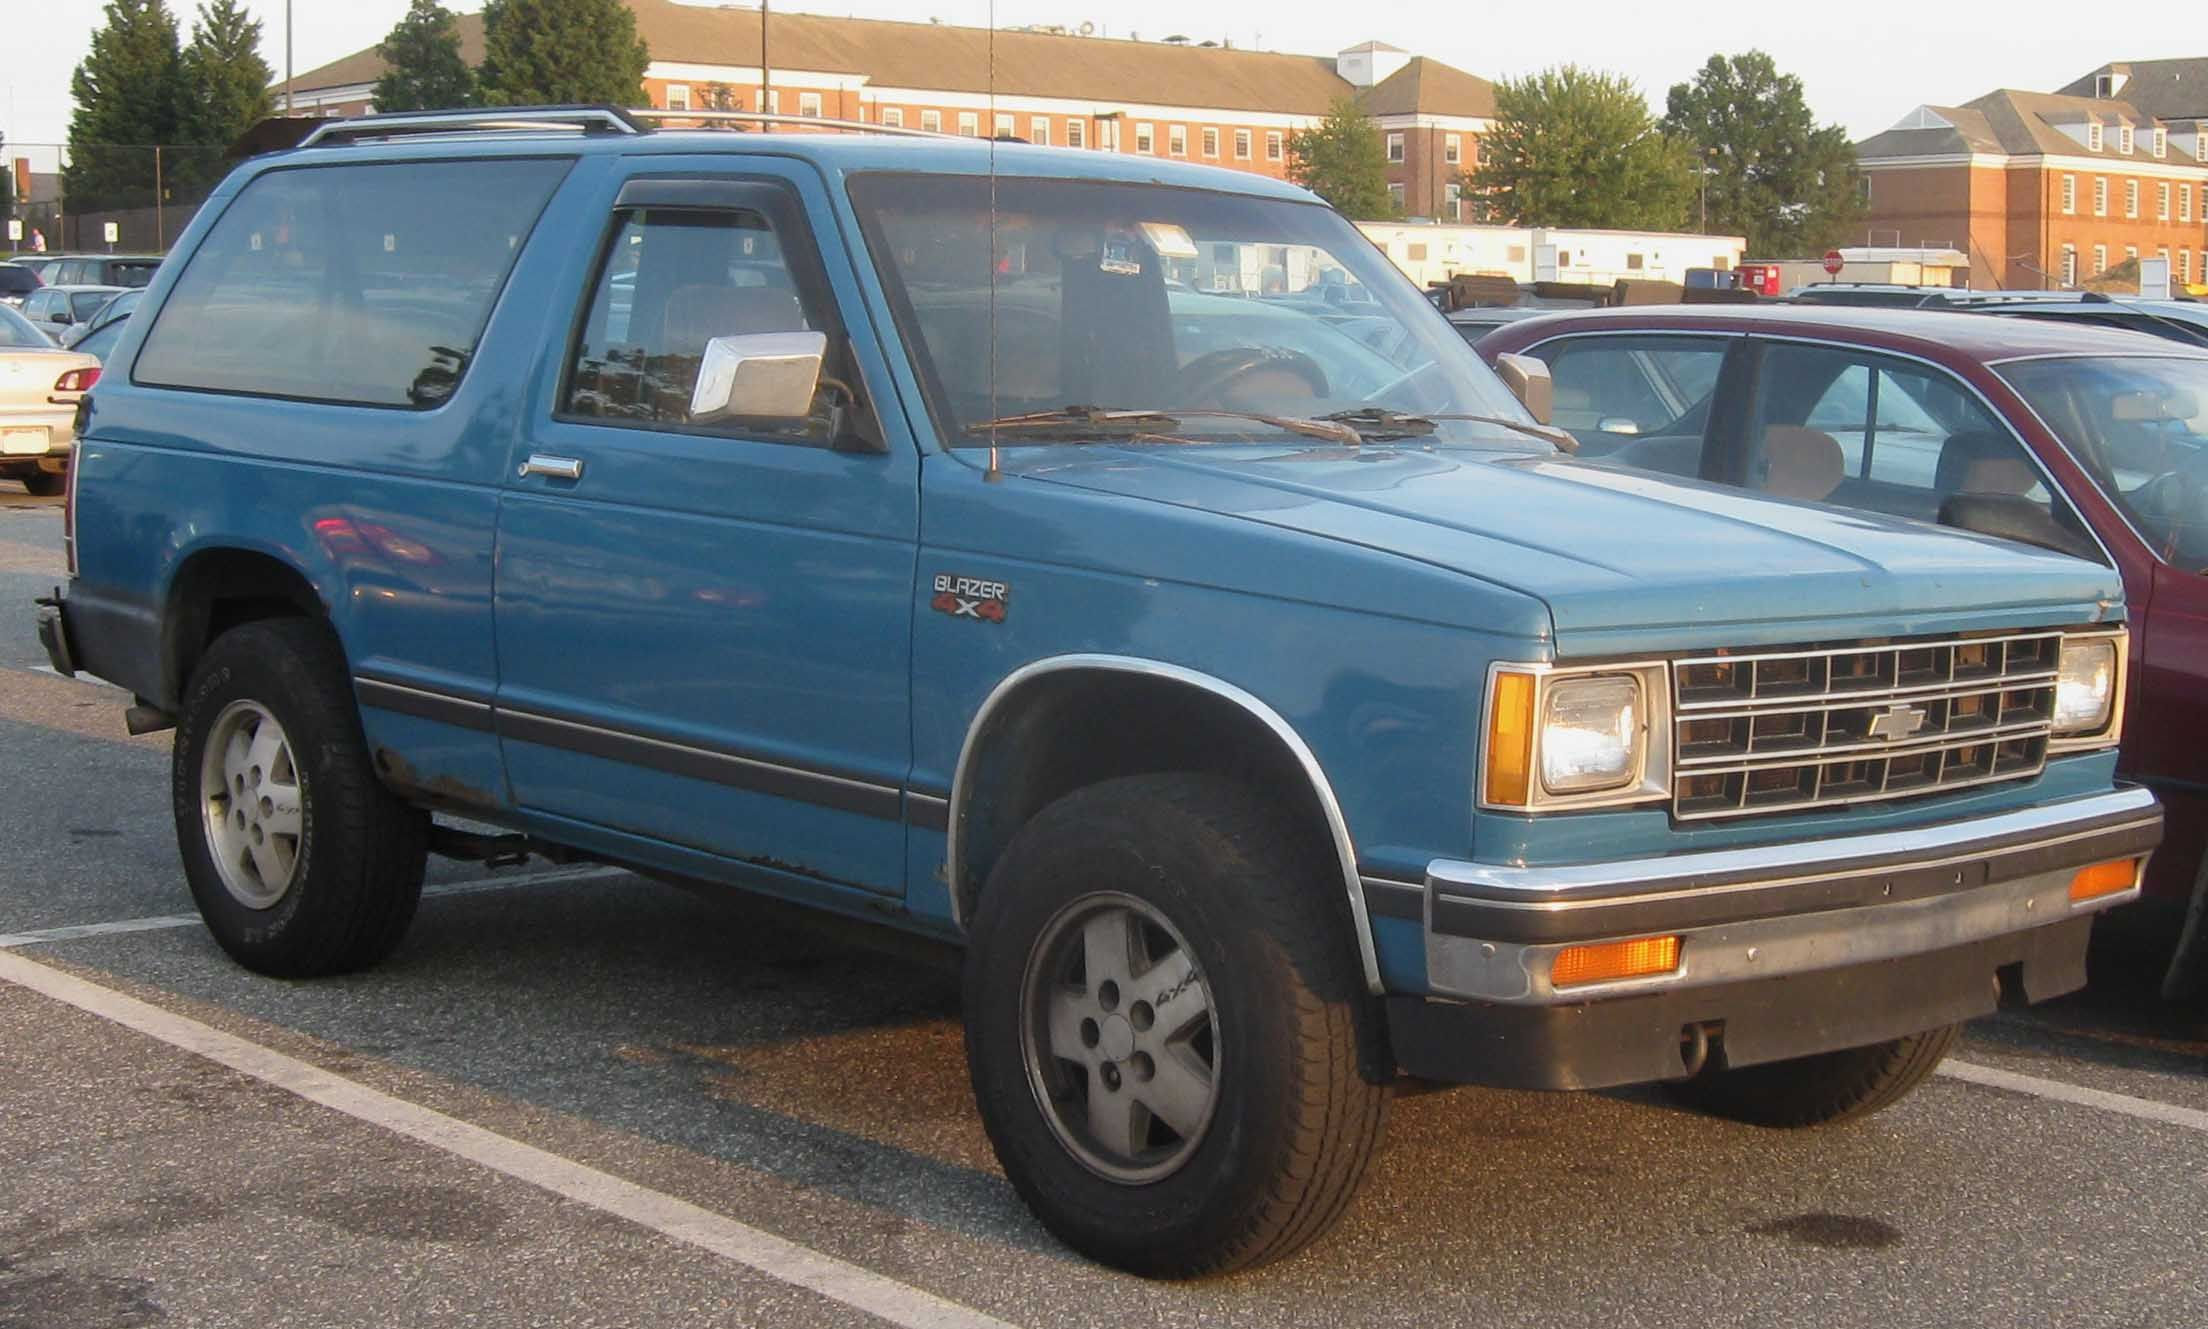 1990 Chevy S10 Blazer Yeah I Owned One Like This For About 6